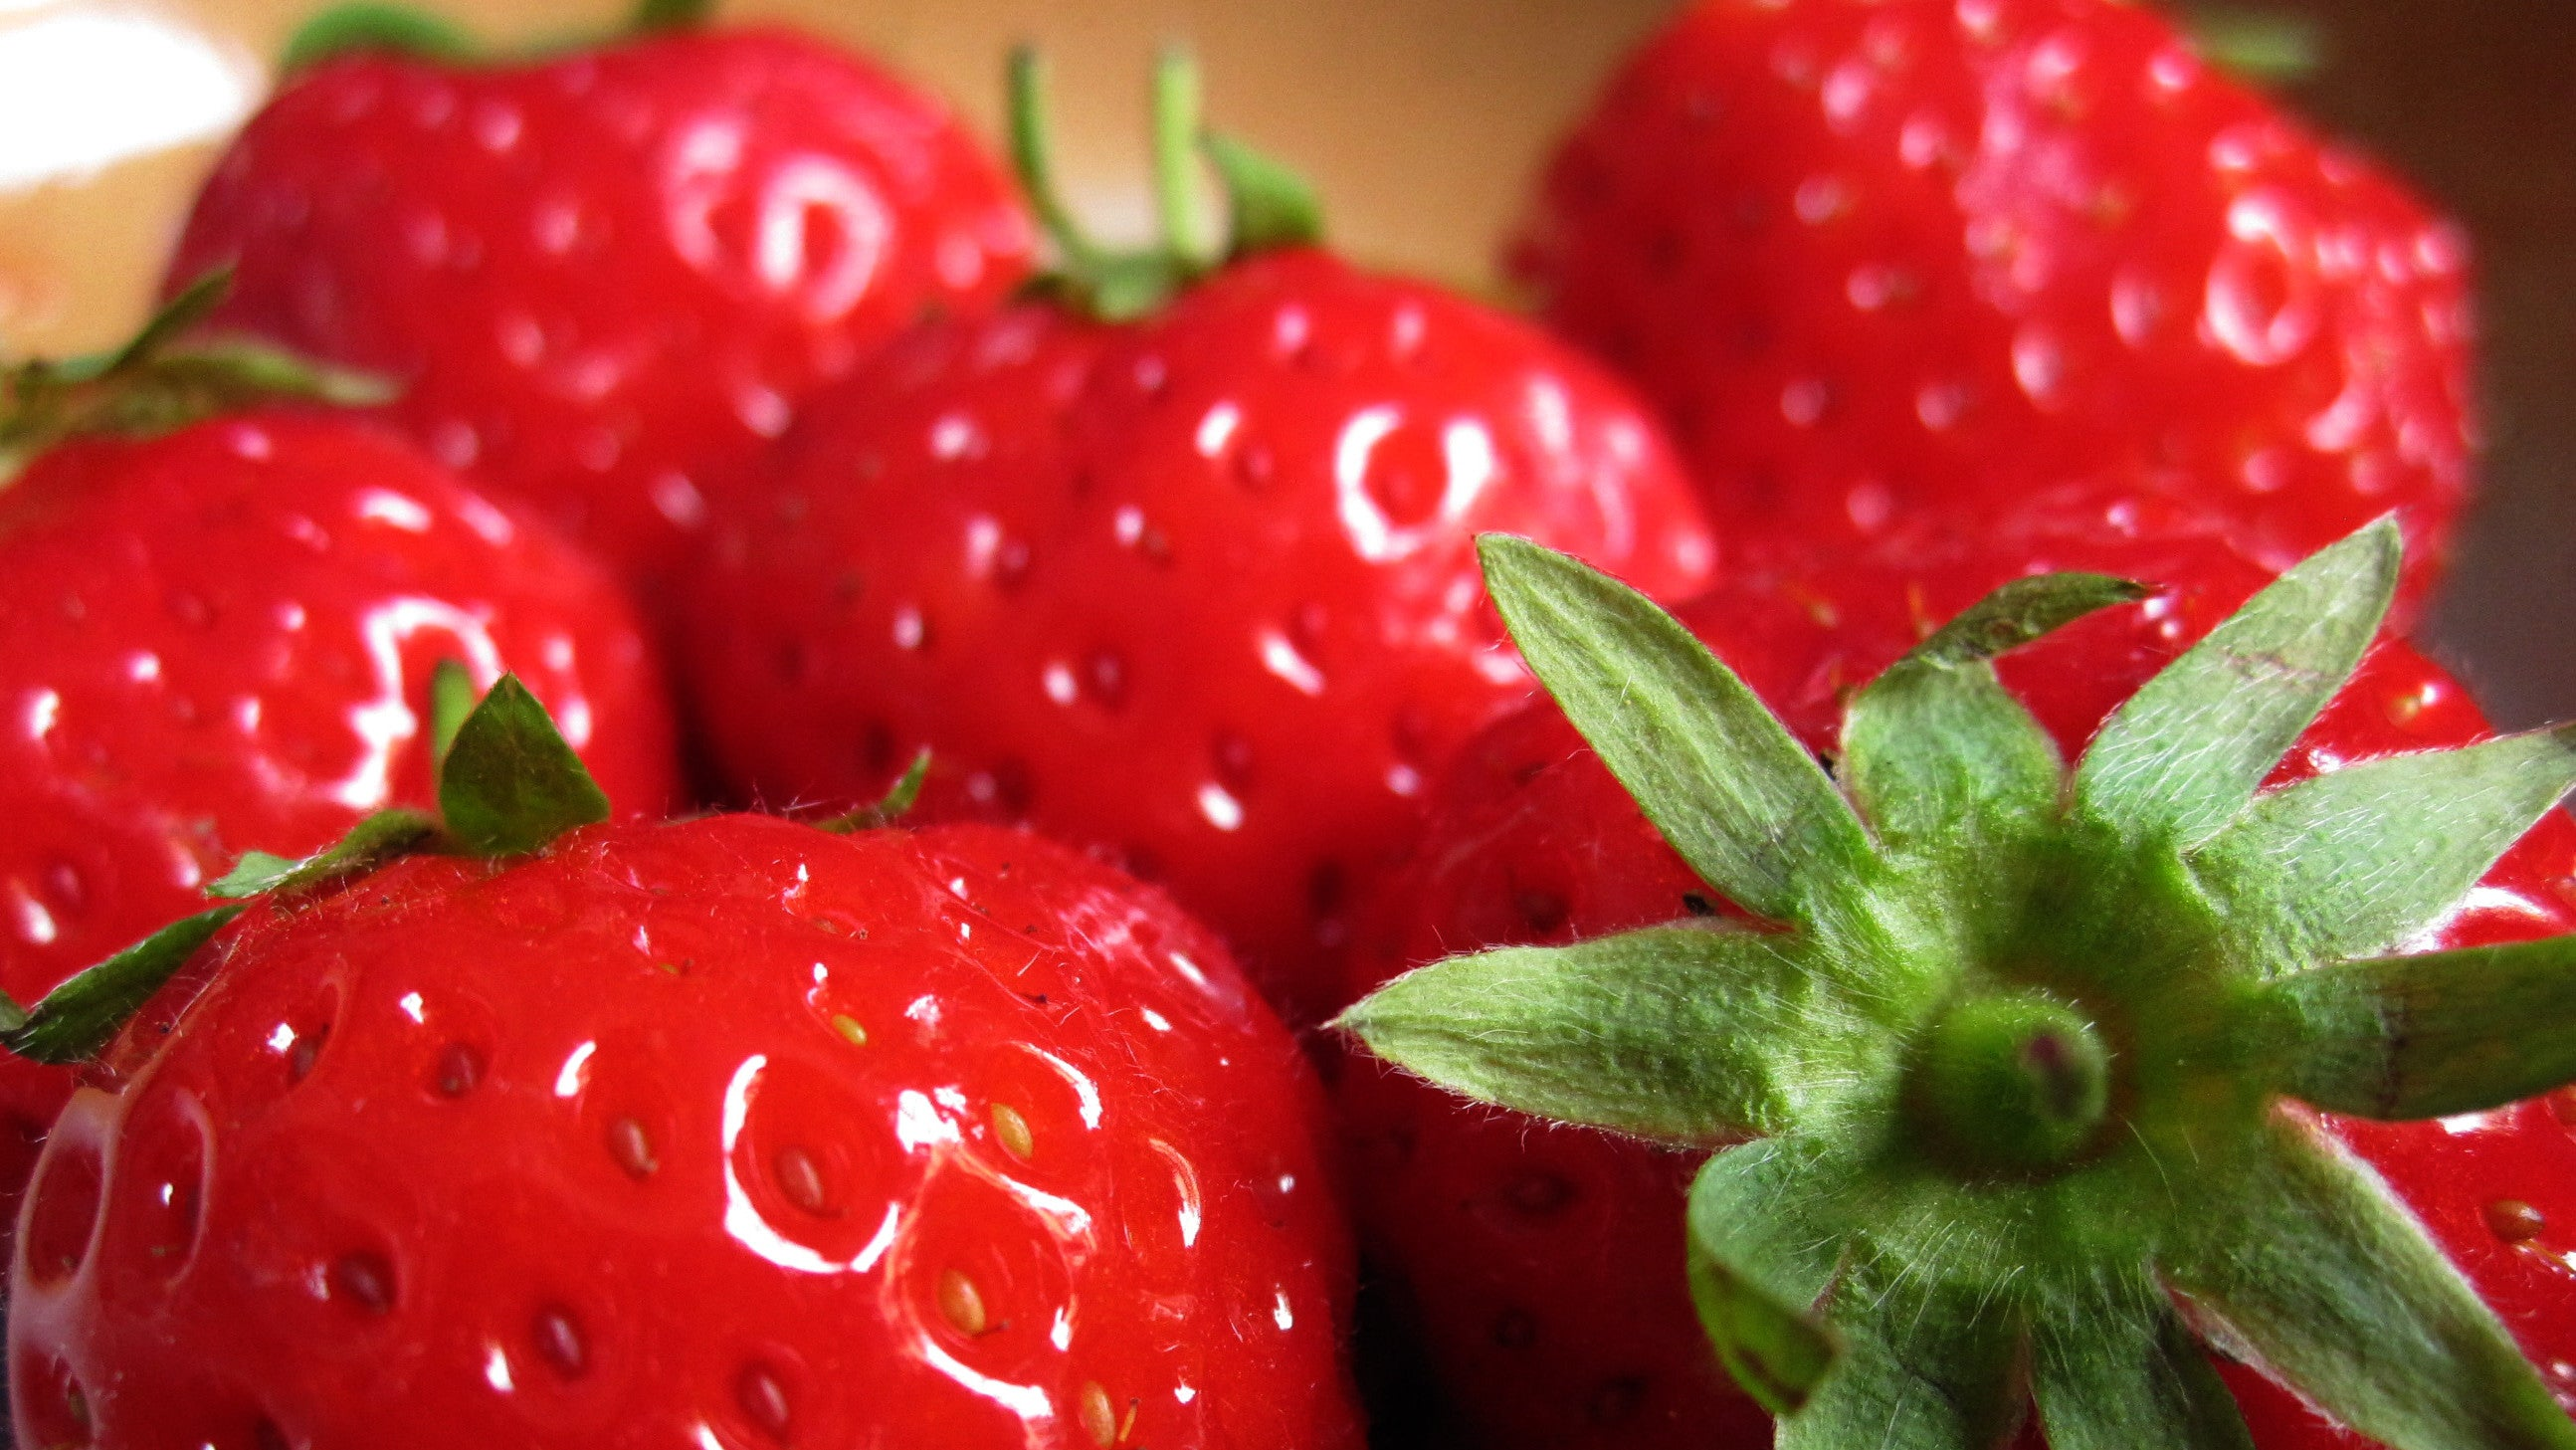 Are There Really Little Bugs In Your Strawberries?